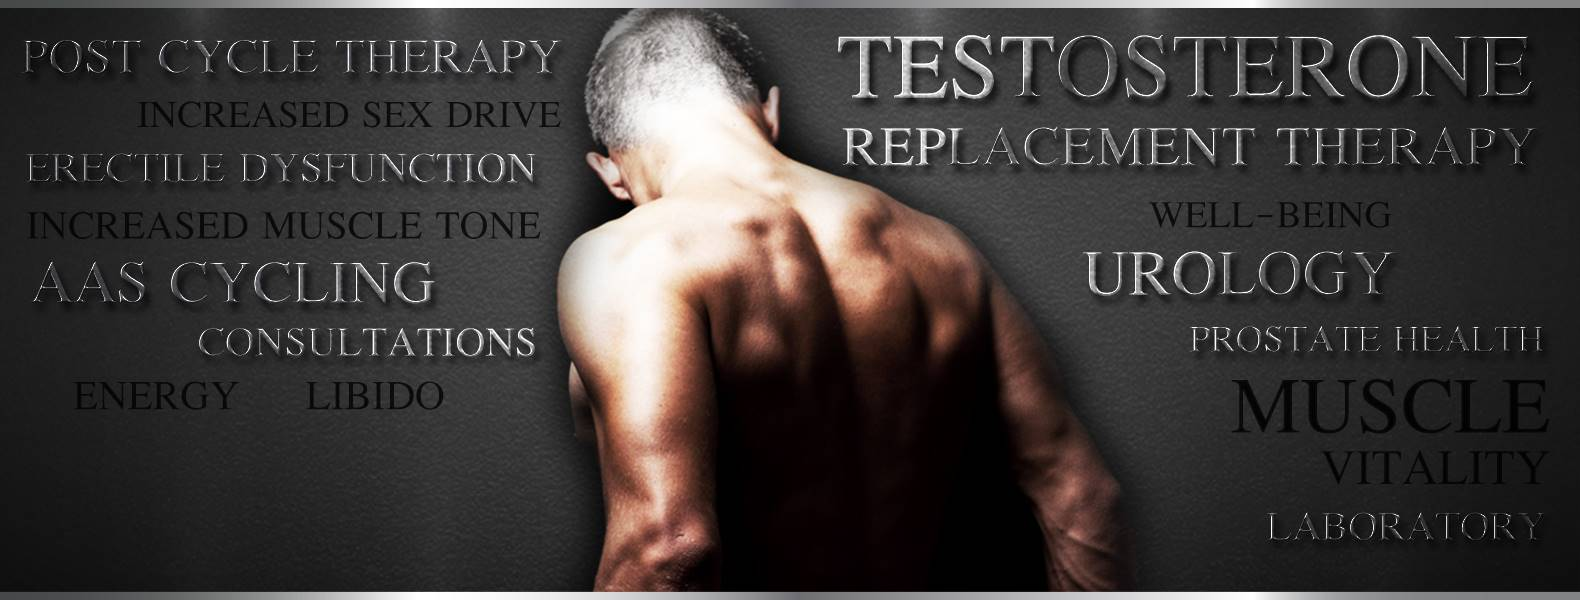 Male Hormone Replacement Therapy